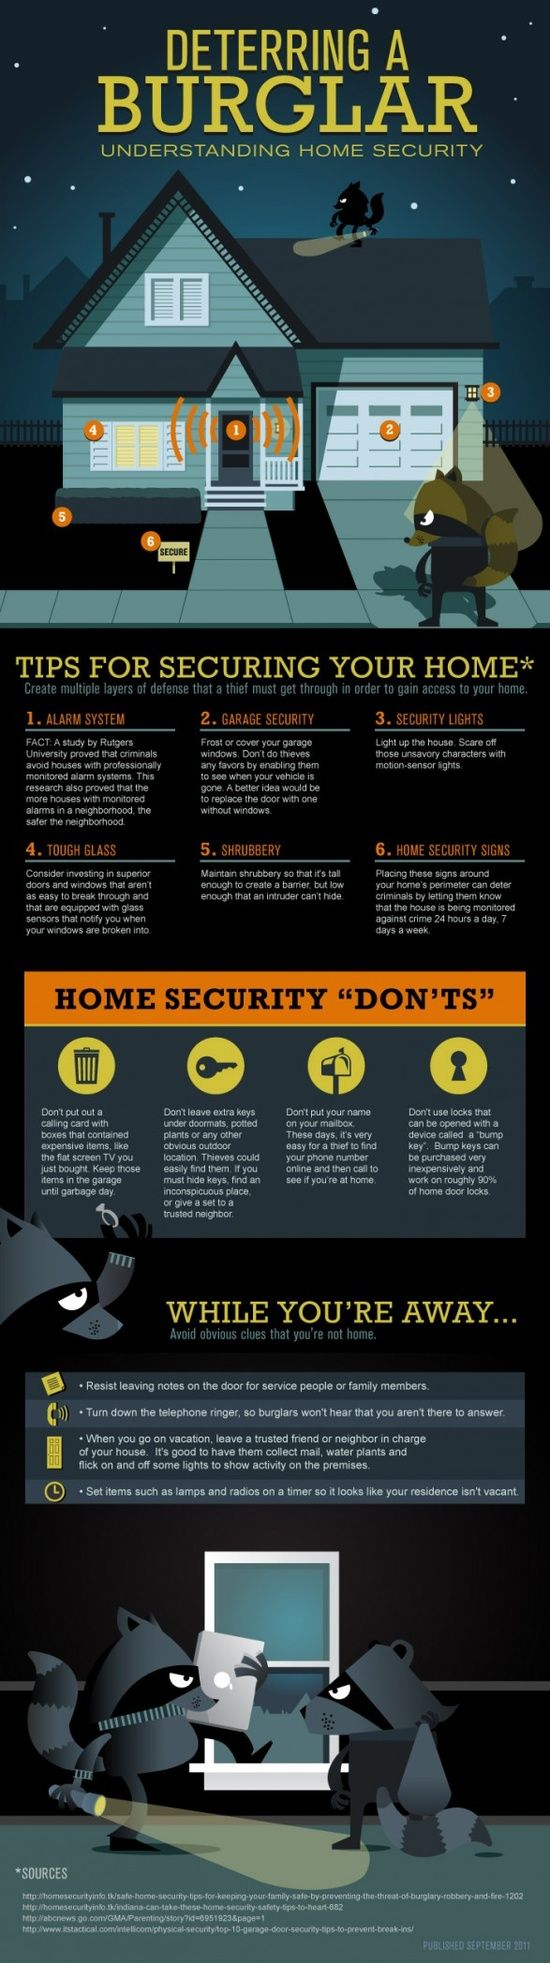 home security tips - home security tips Repinly Home Decor Popular Pins LOVE this. Especially with 3 little ones!